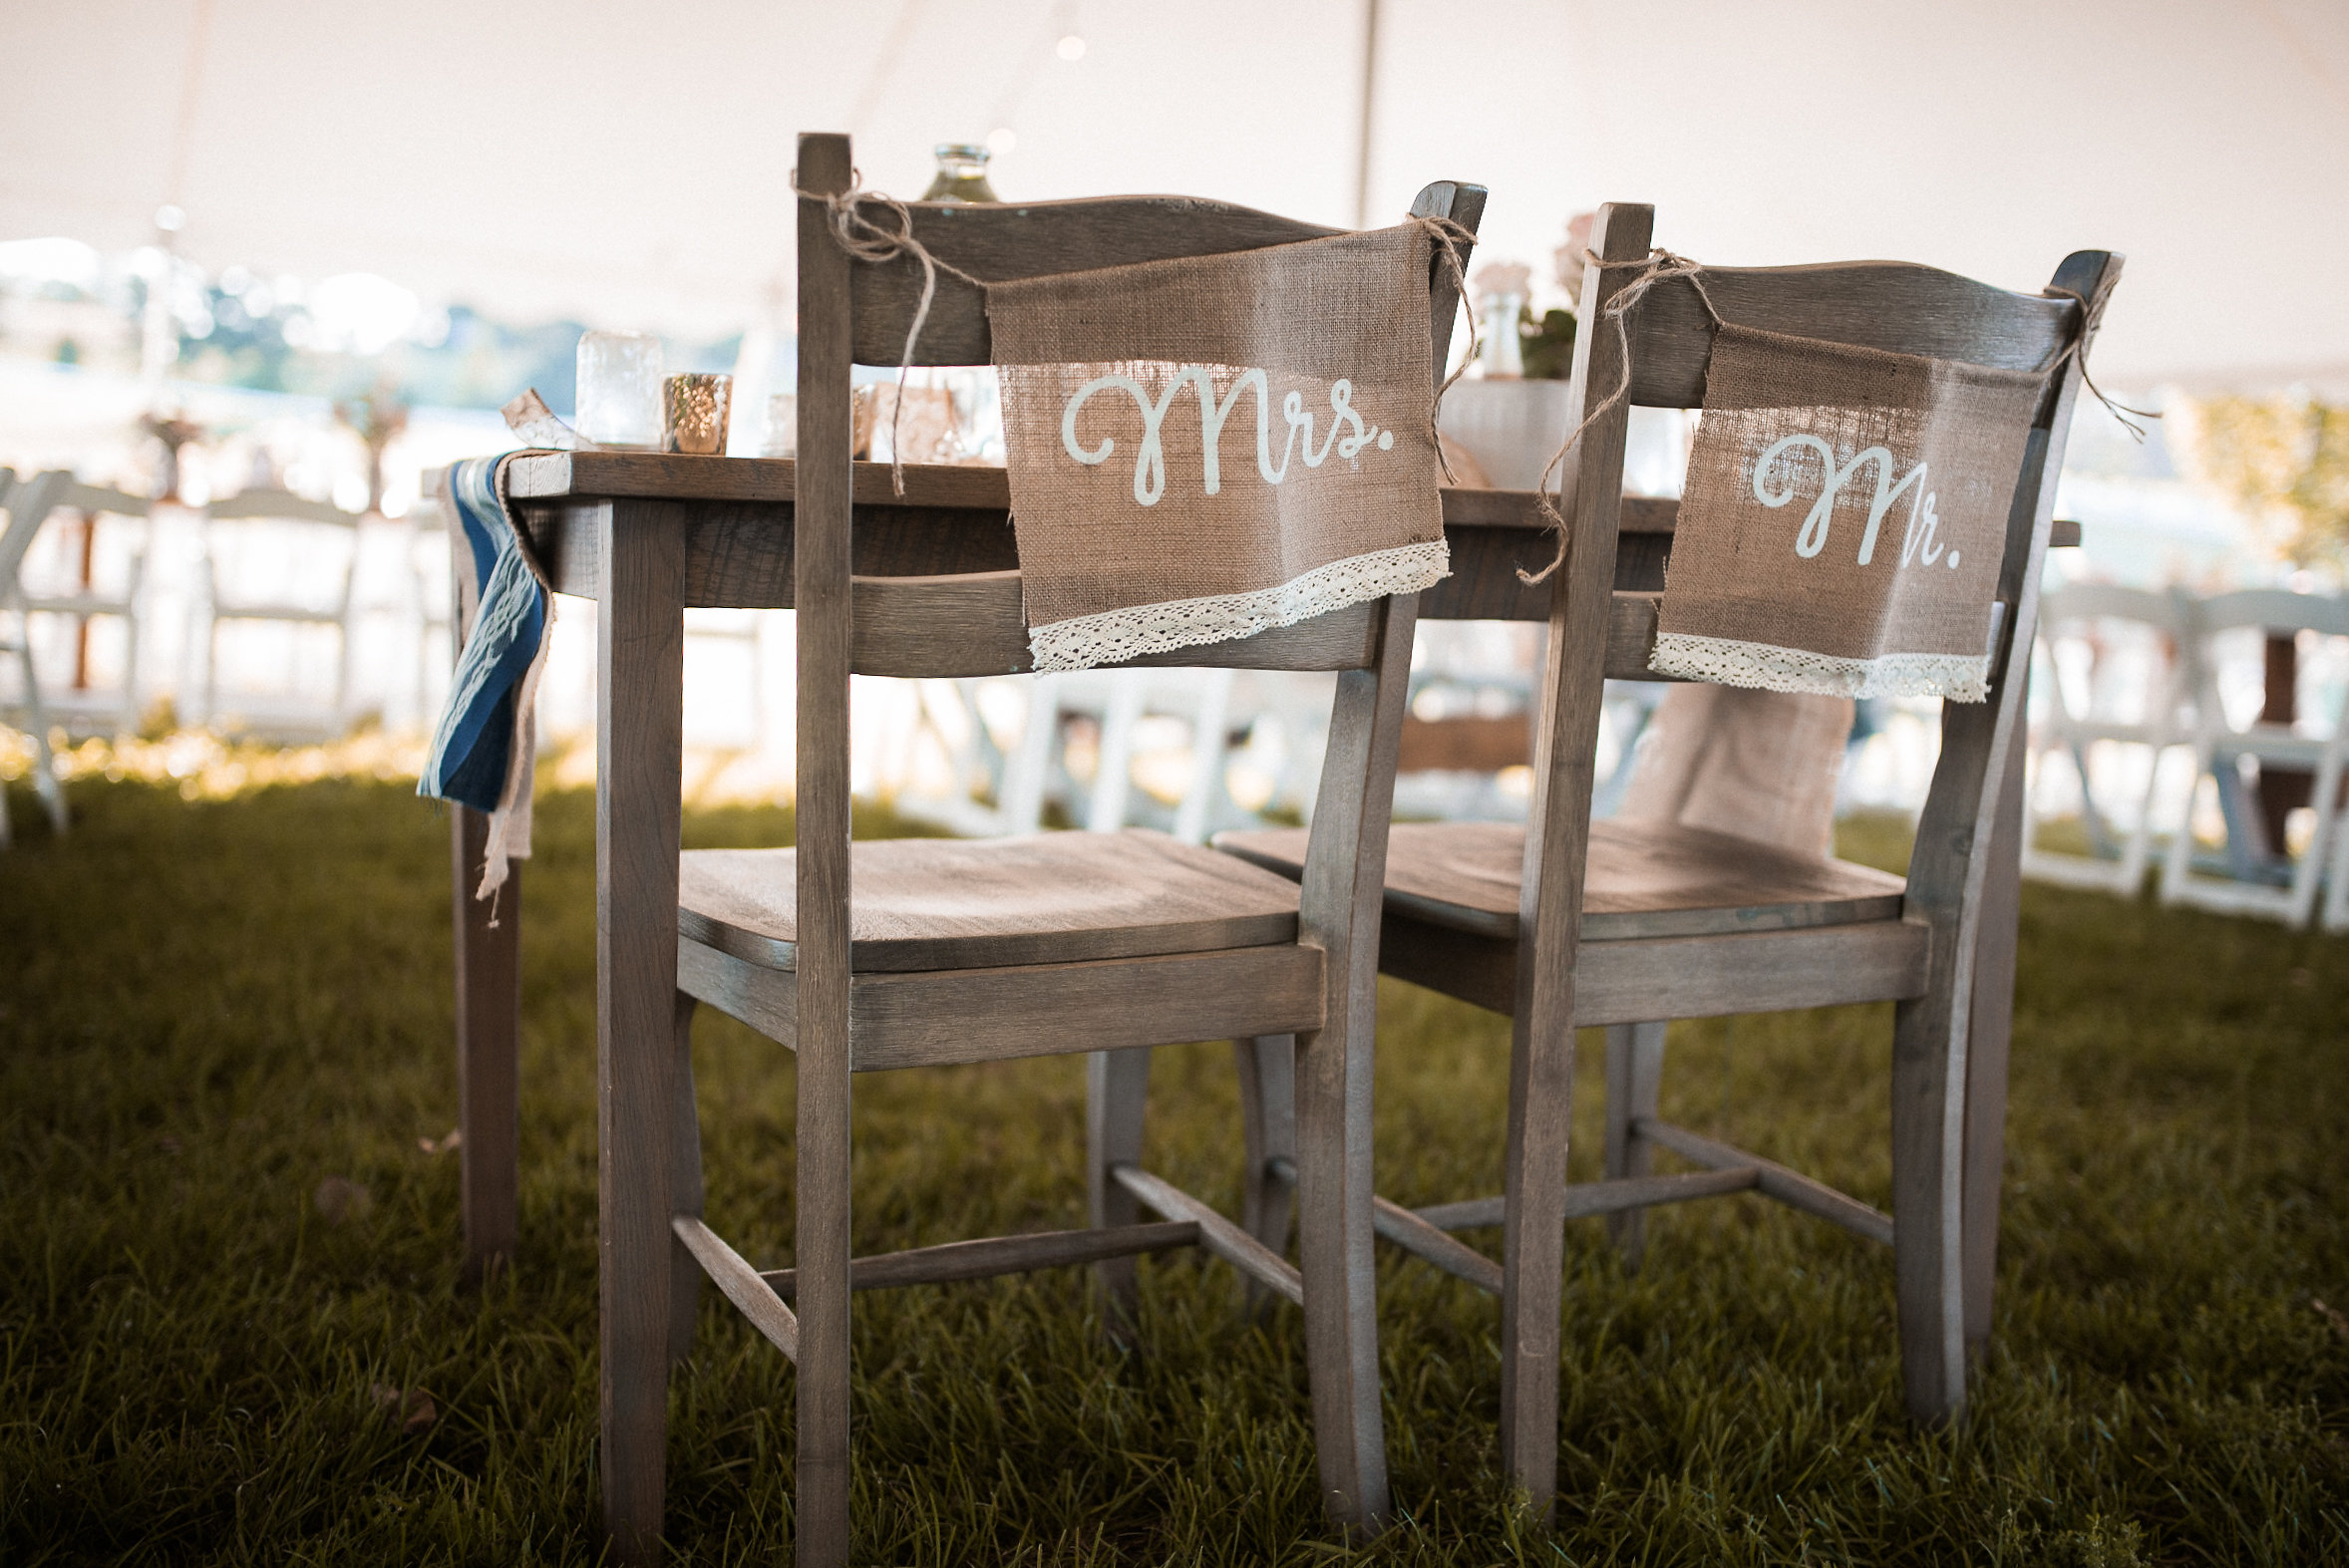 Bride and groom chairs at wedding